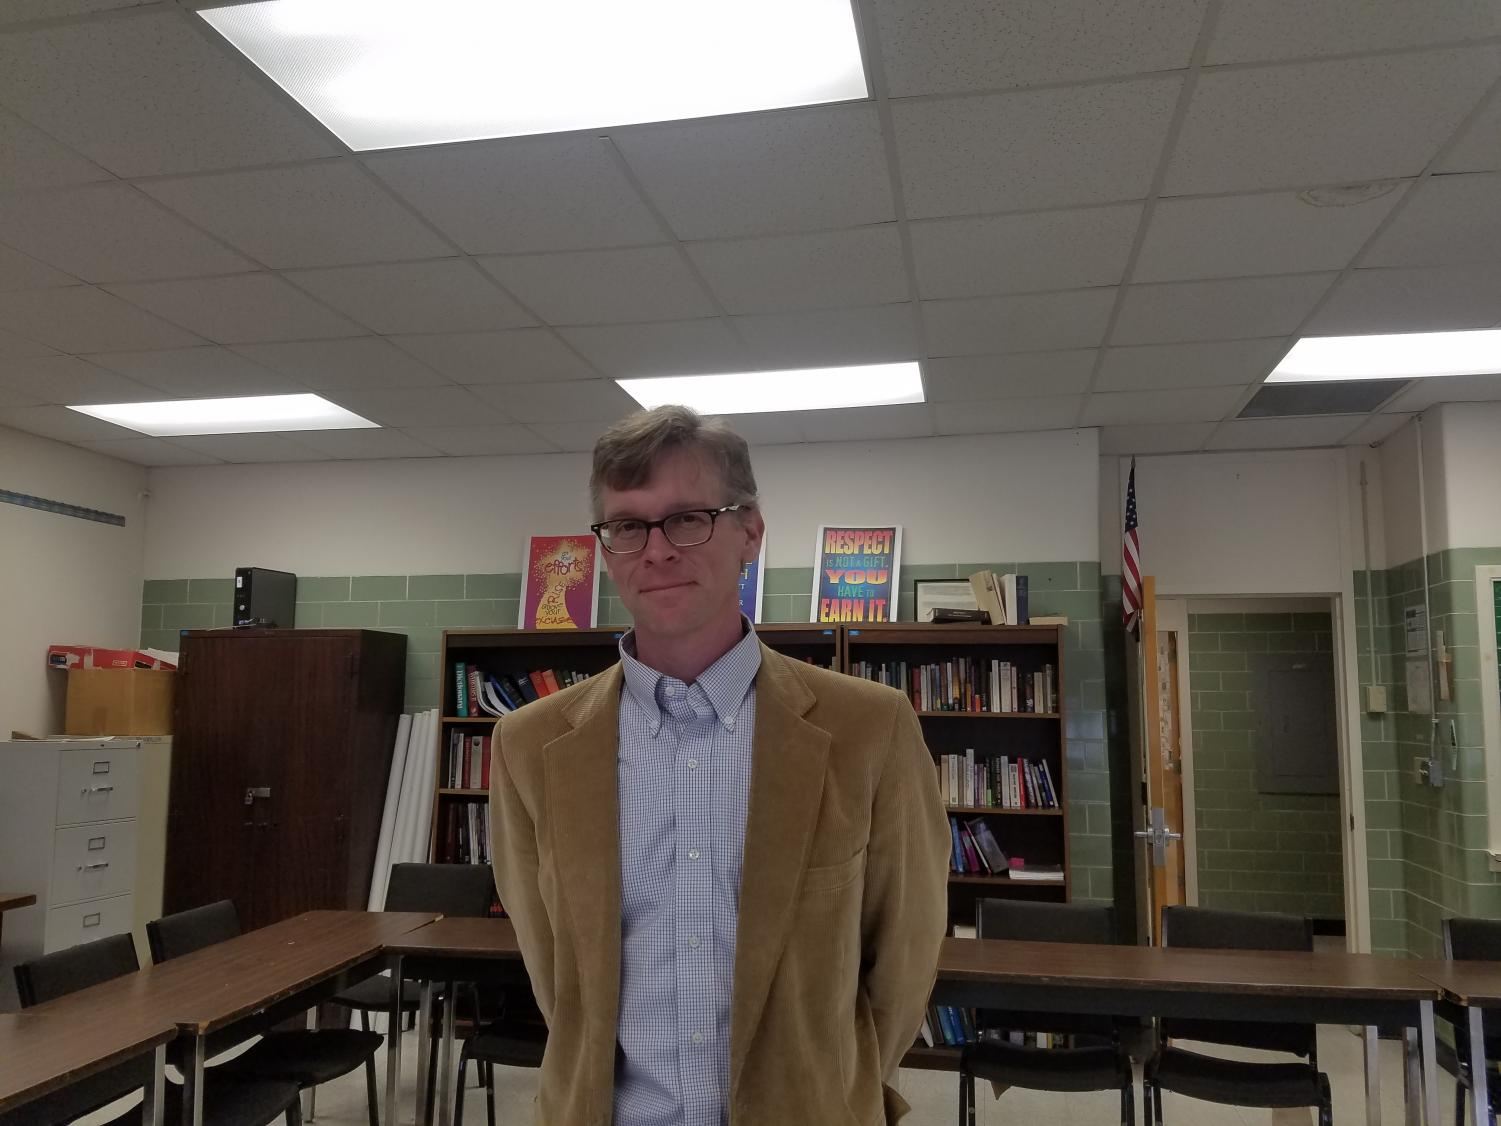 Dr. Easterling stands after class in Hooper 106.